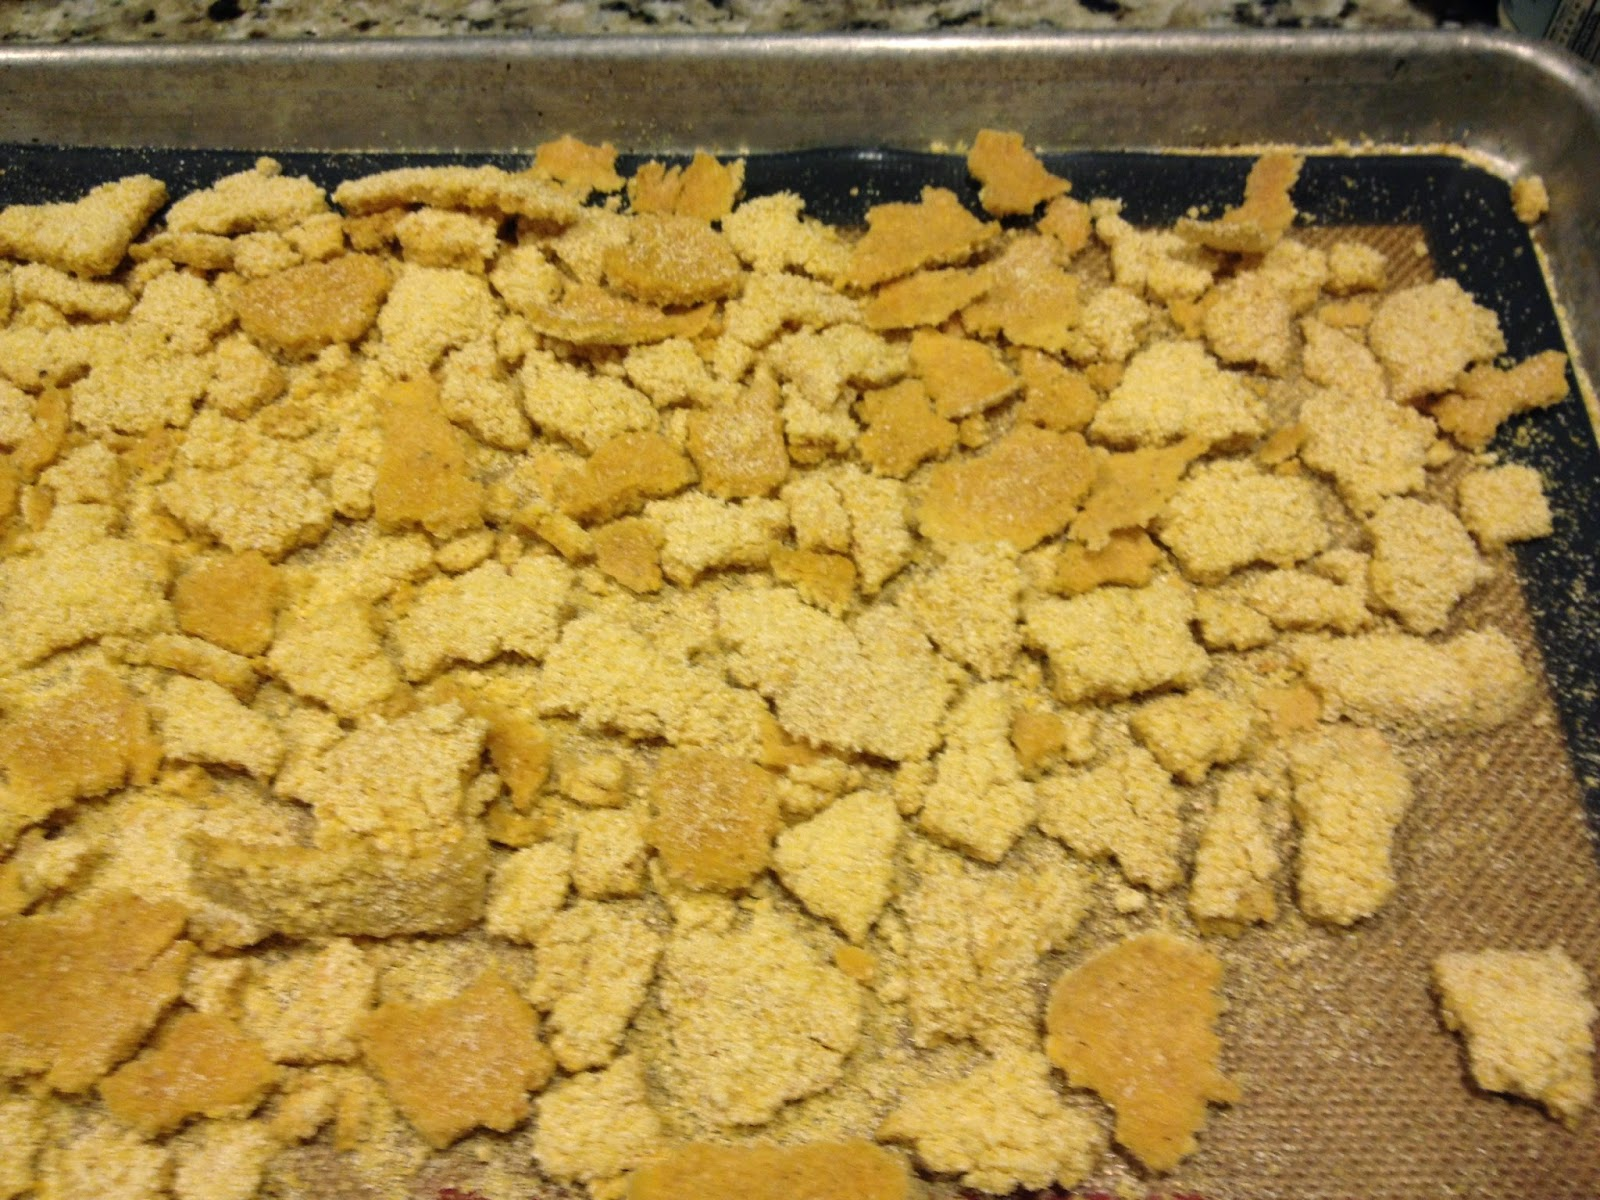 The food allergy queen homemade cornflakes recipe monday january 26 2015 ccuart Image collections